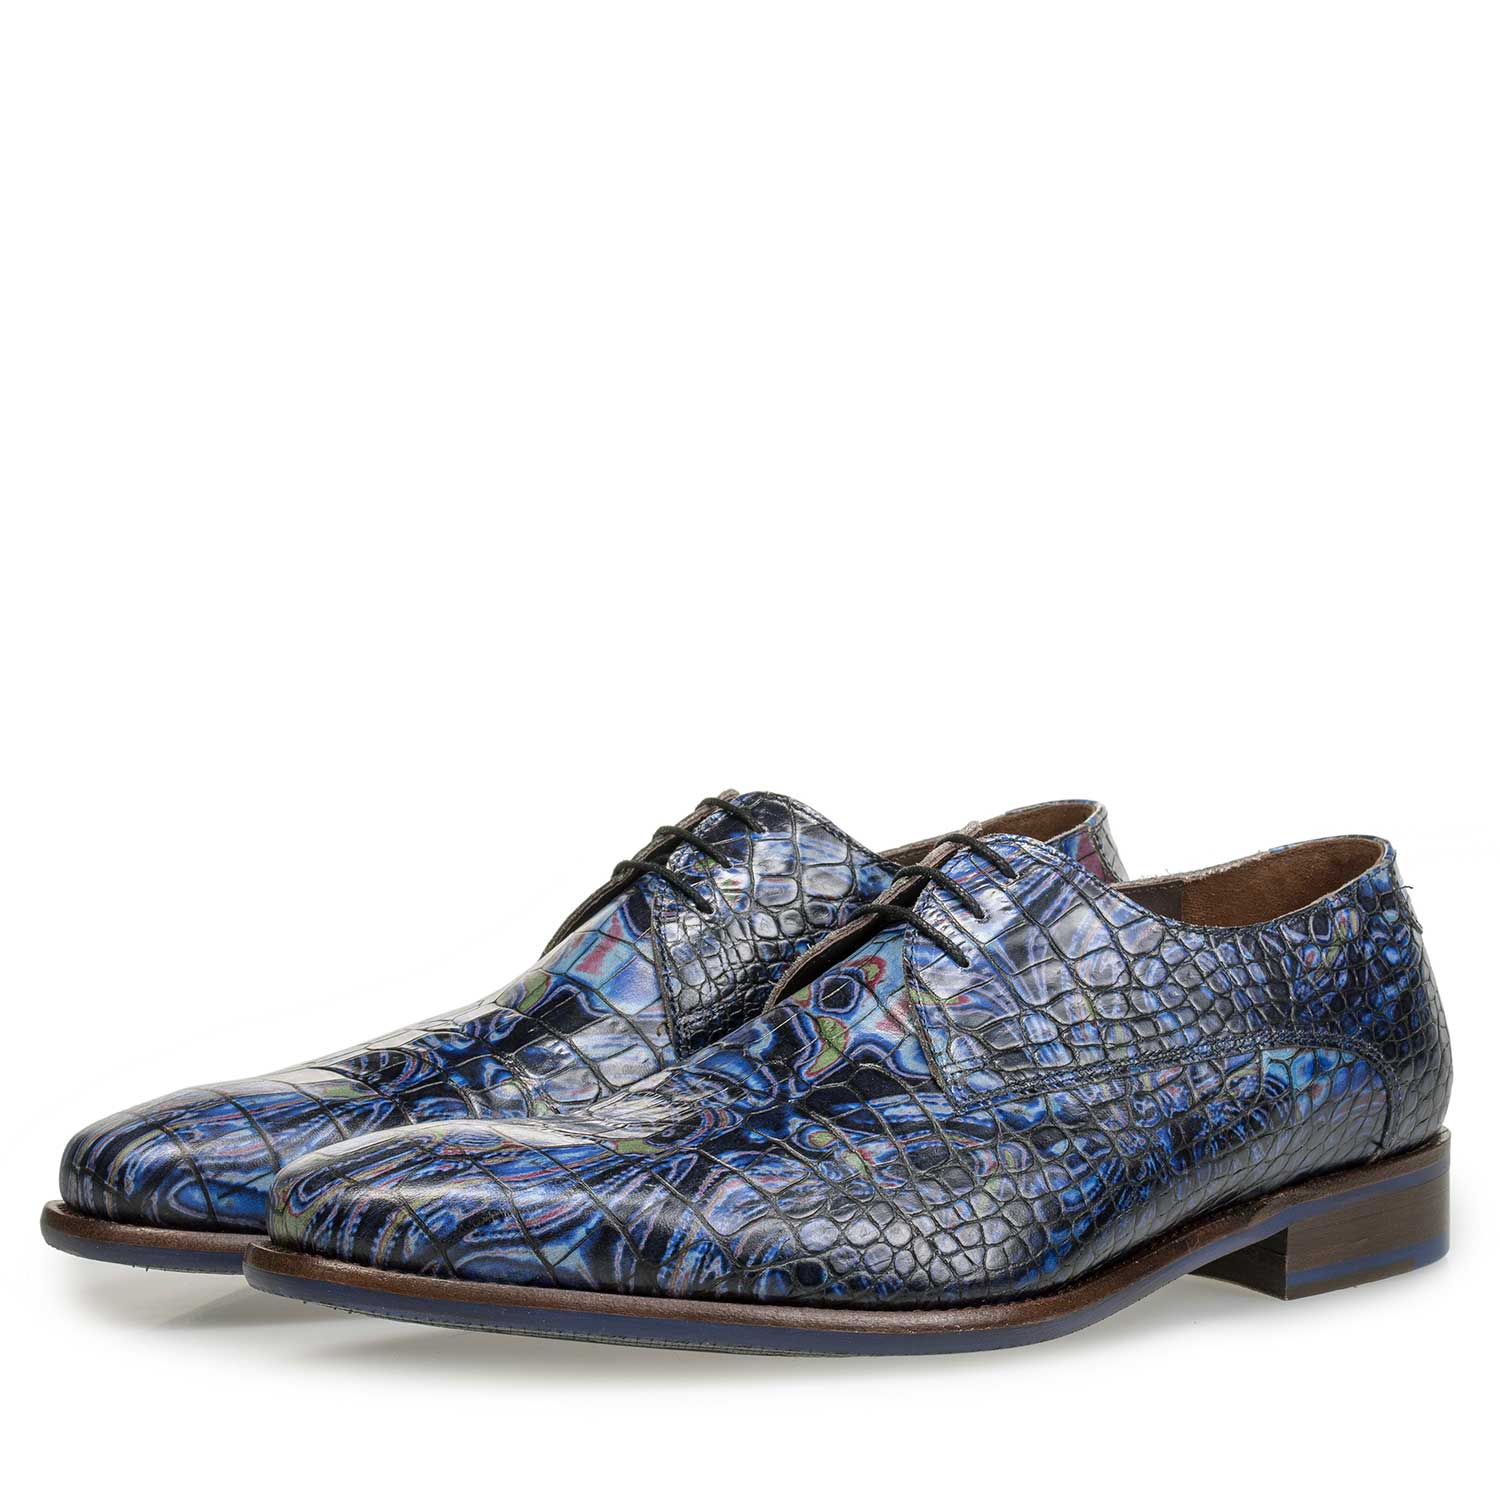 14267/03 - Blue Premium leather lace shoe with croco print